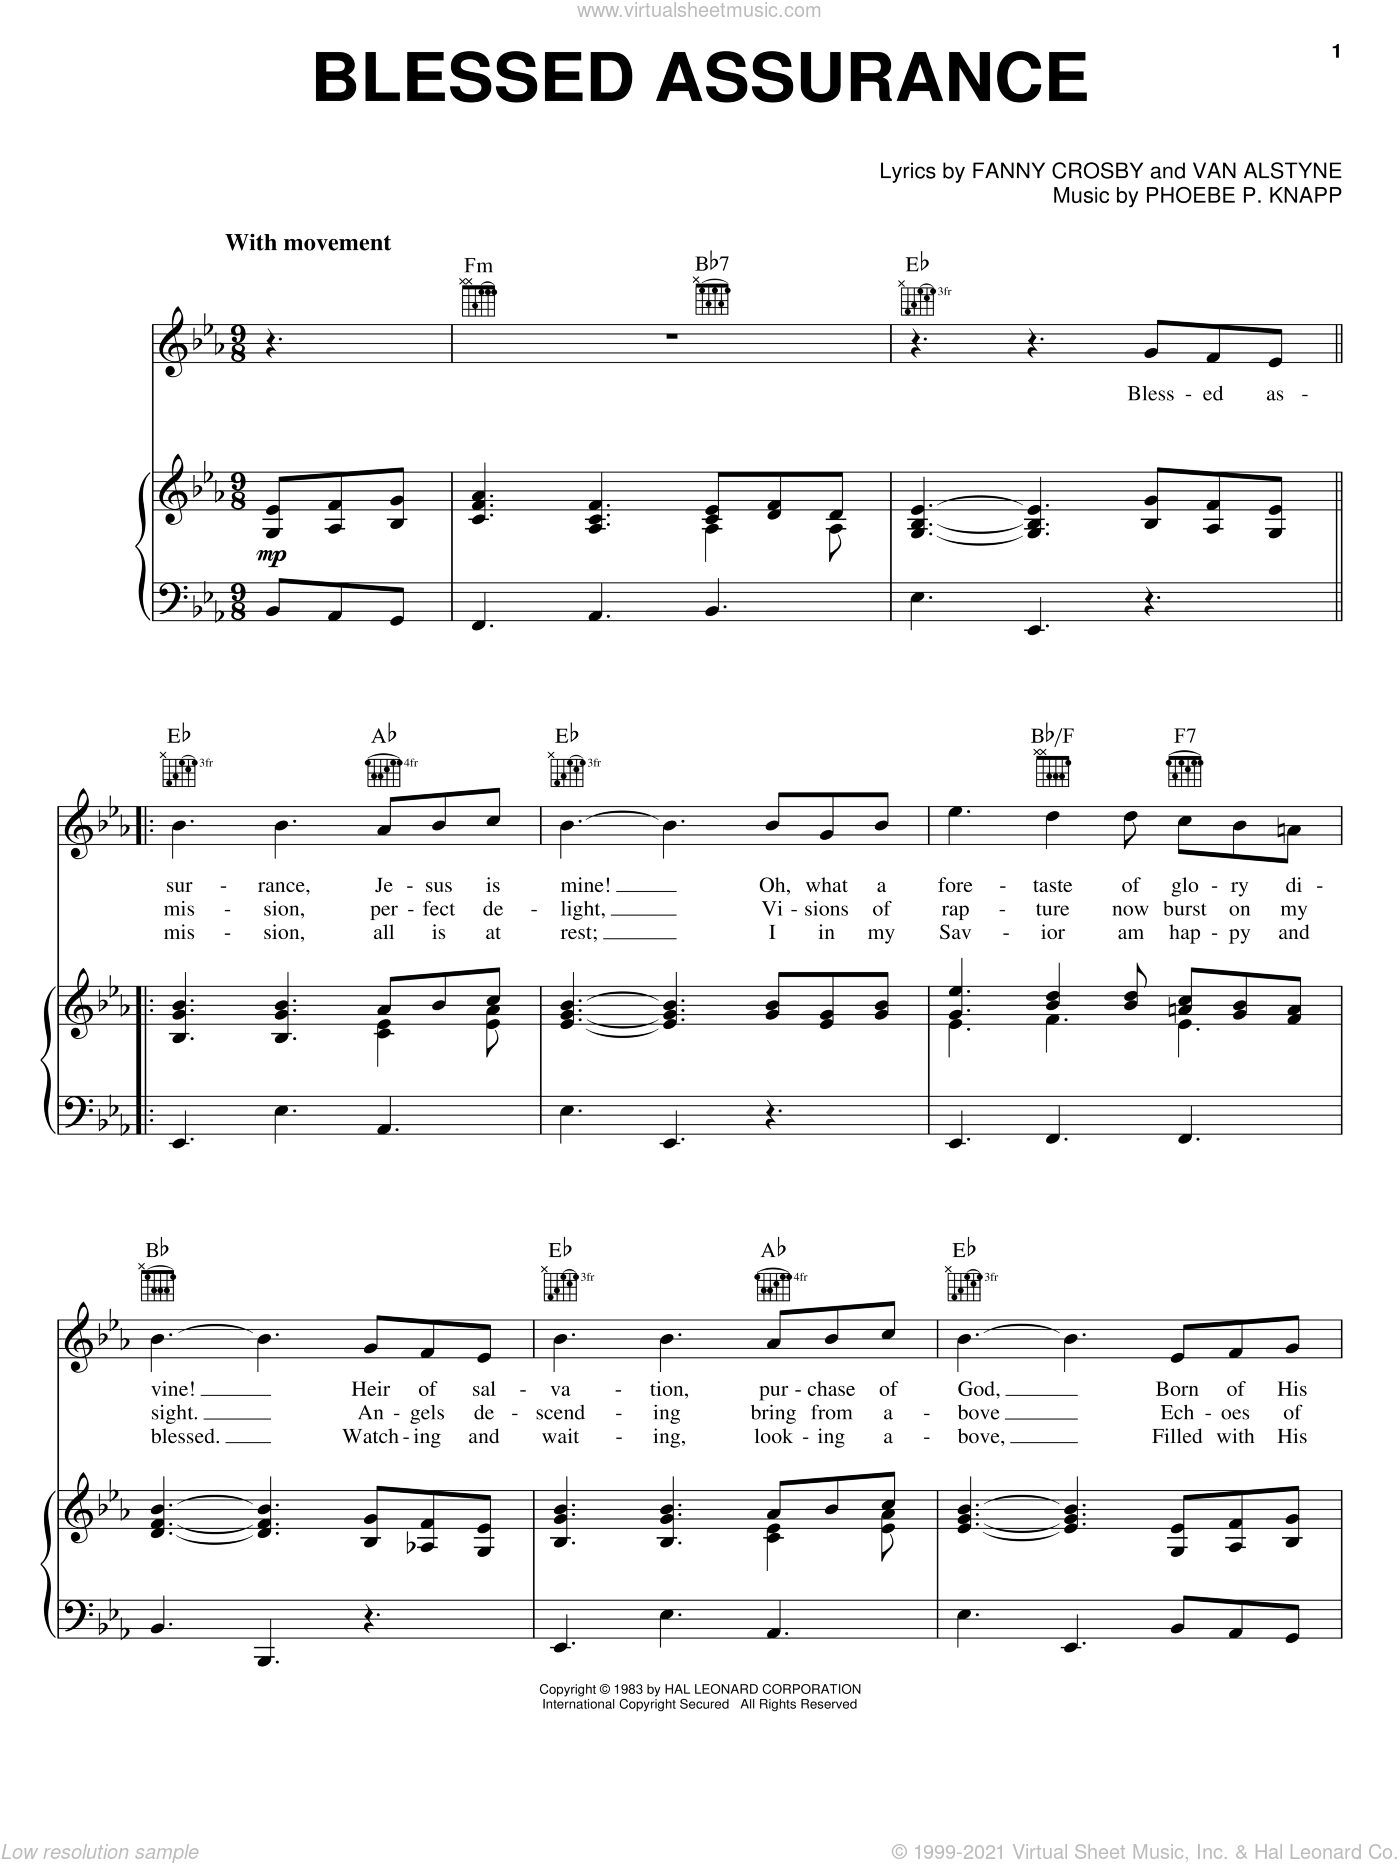 Blessed Assurance sheet music for voice, piano or guitar by Fanny J. Crosby, Michael English and Phoebe Palmer Knapp, intermediate skill level